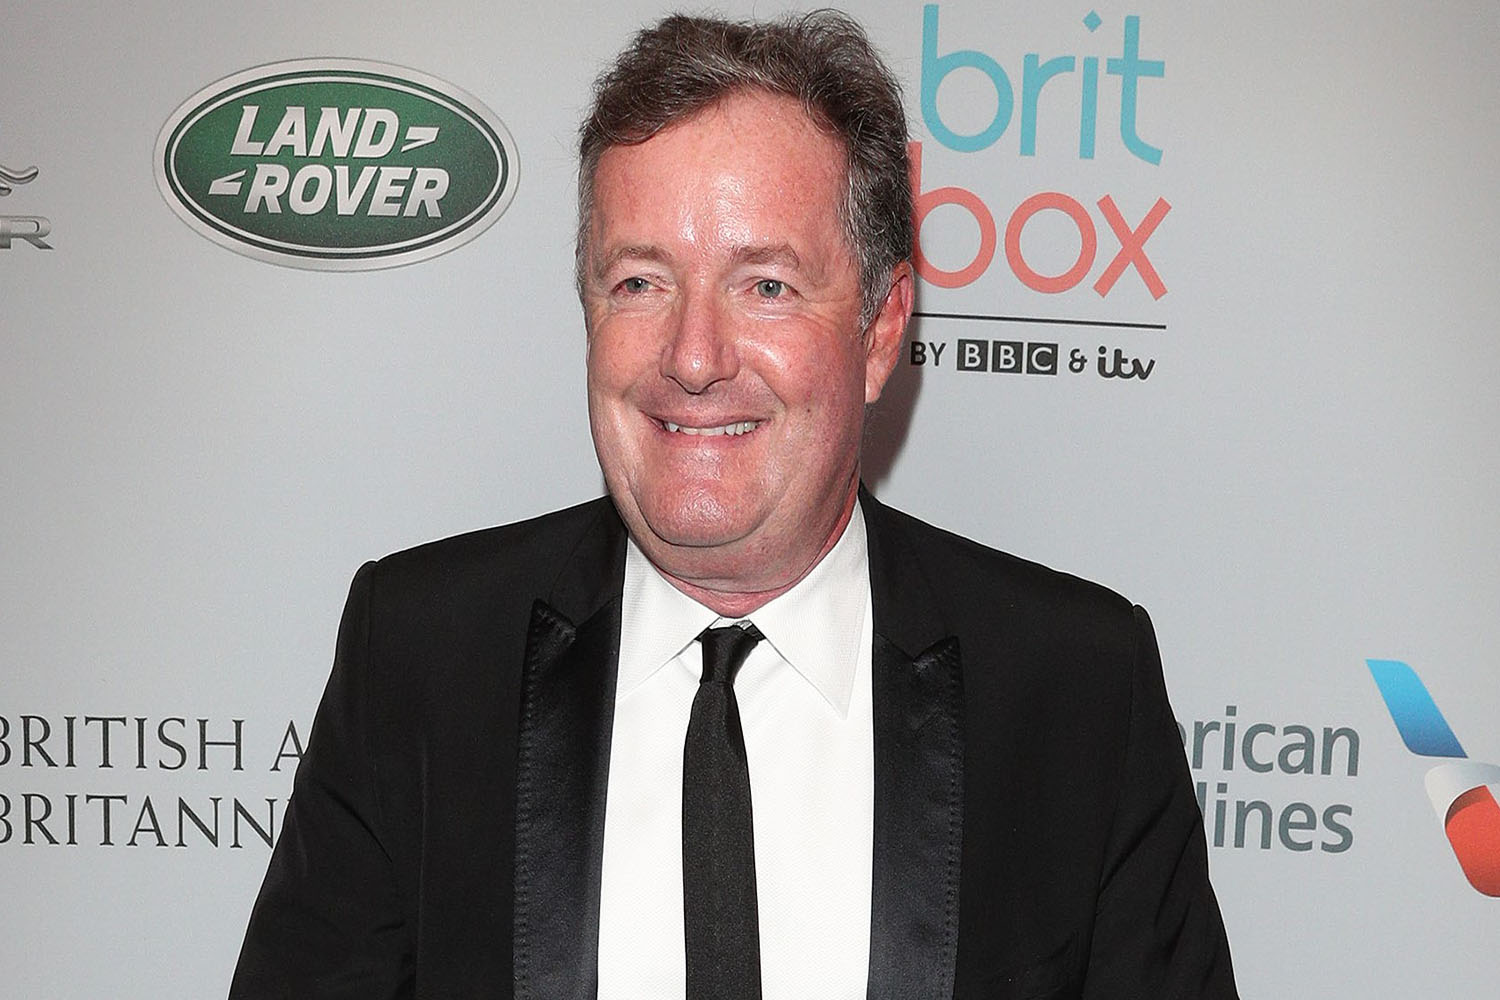 Piers Morgan hits back at claims he's not returning to GMB after break